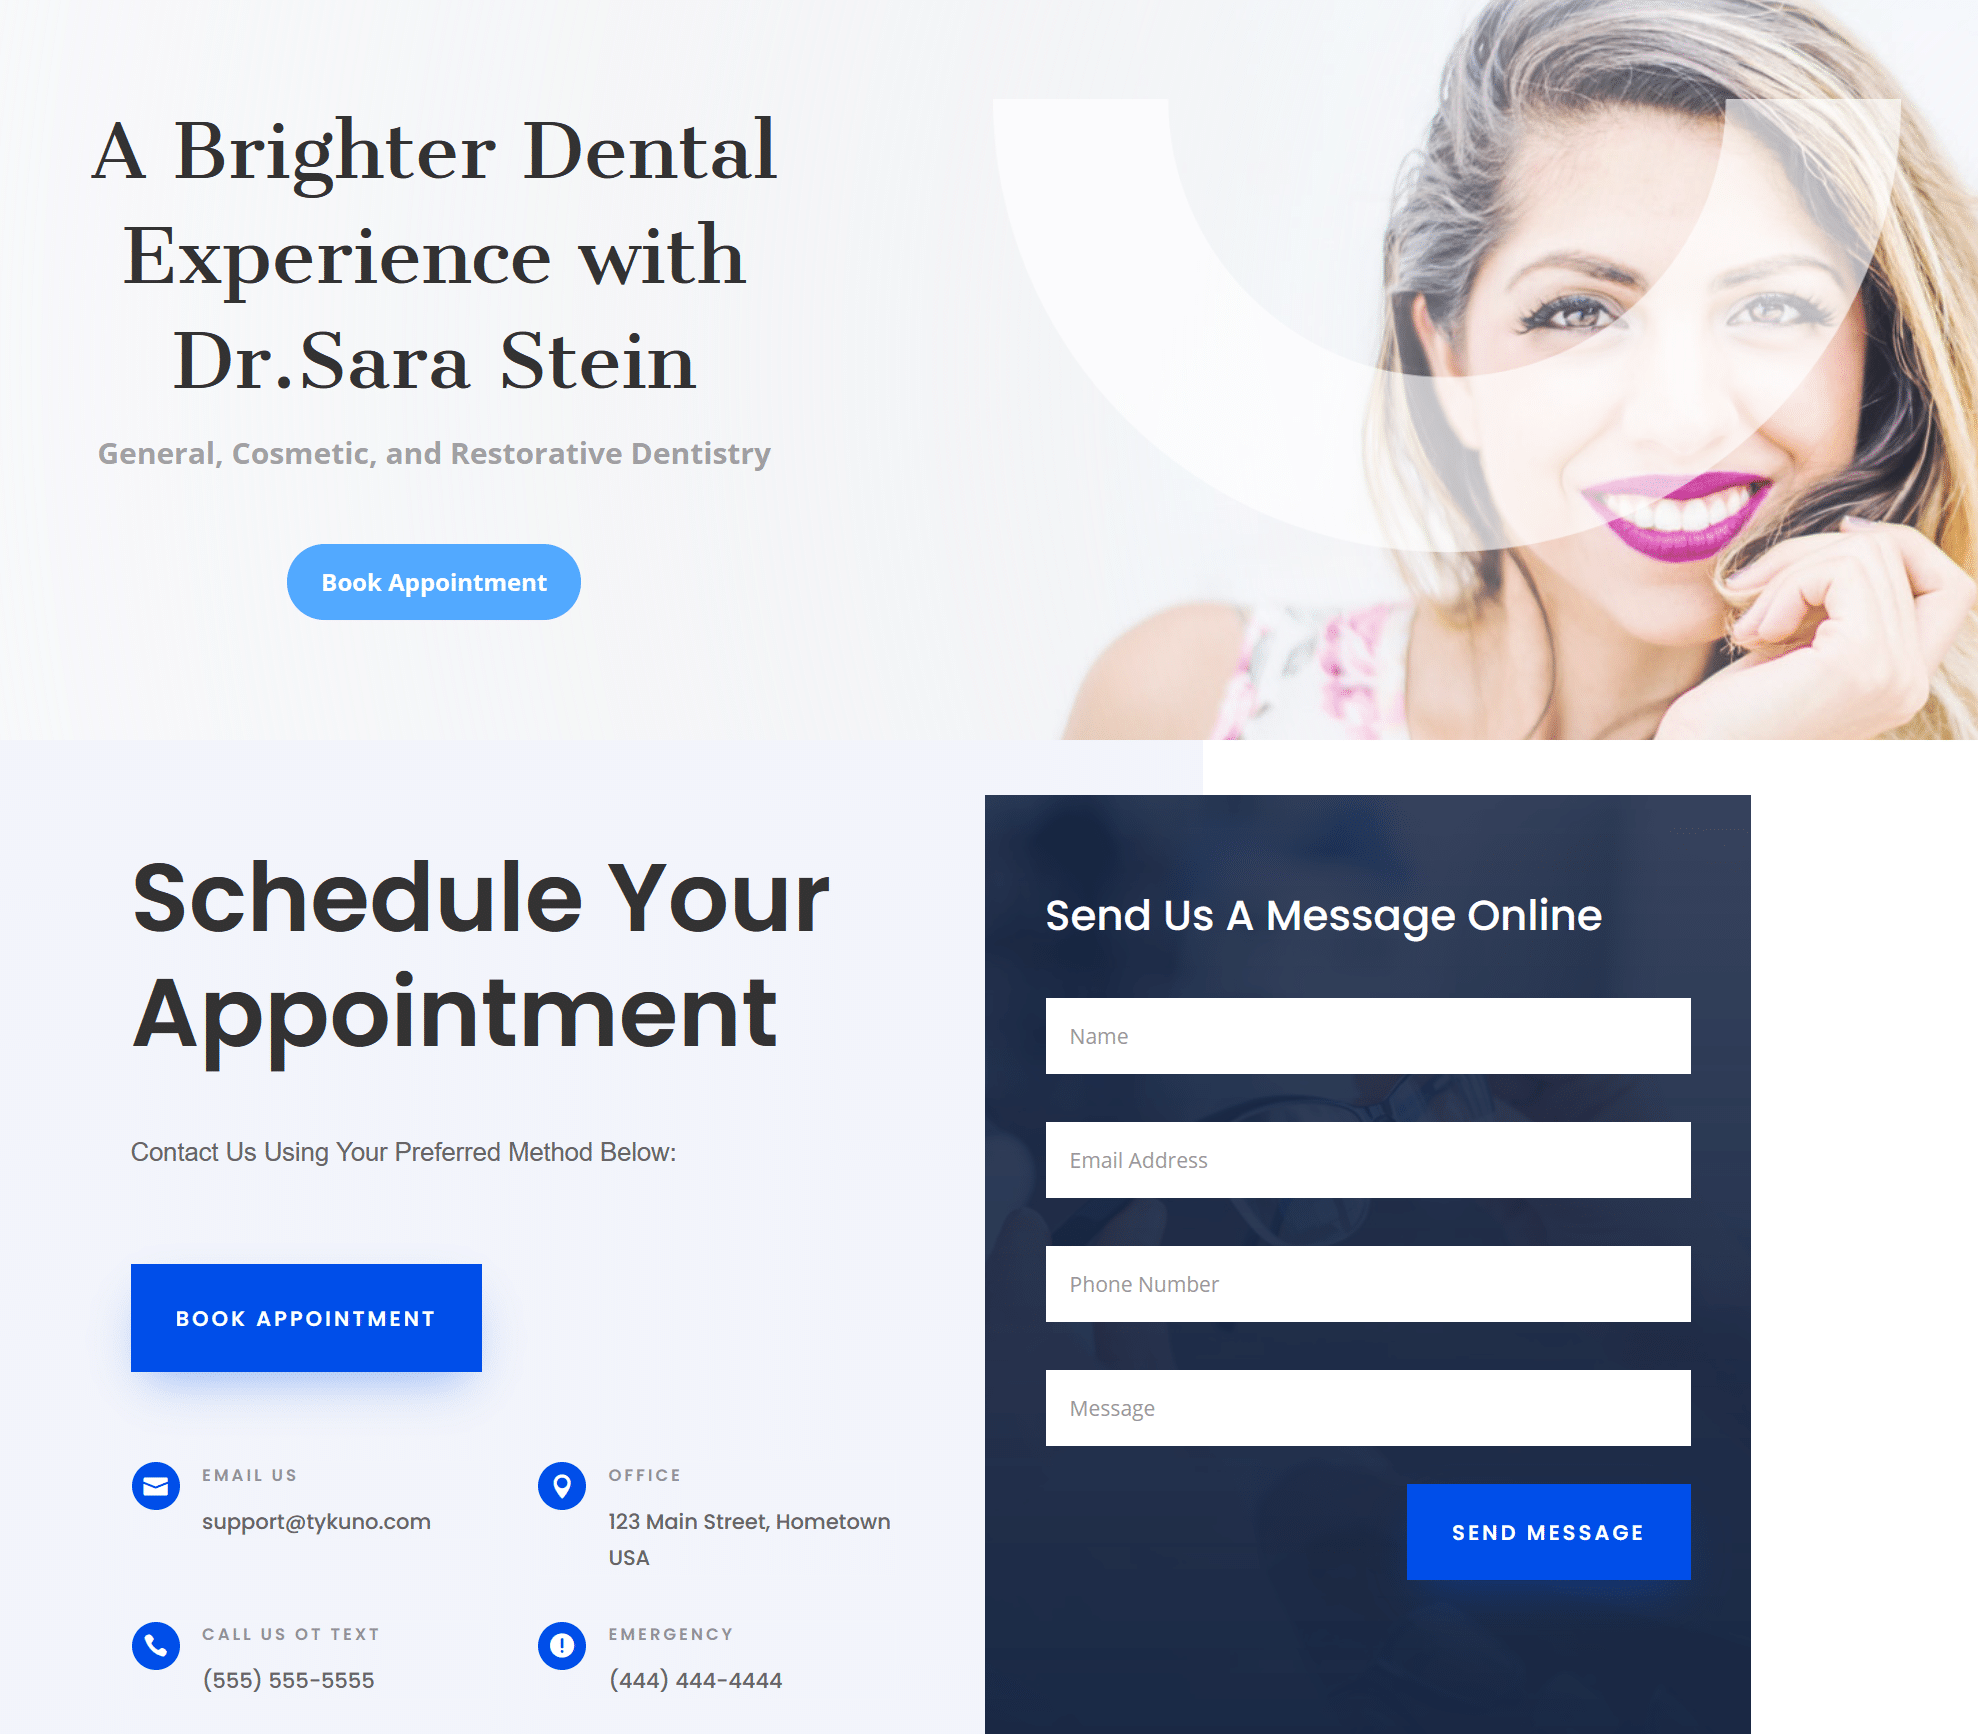 tykuno dentistry advertising page